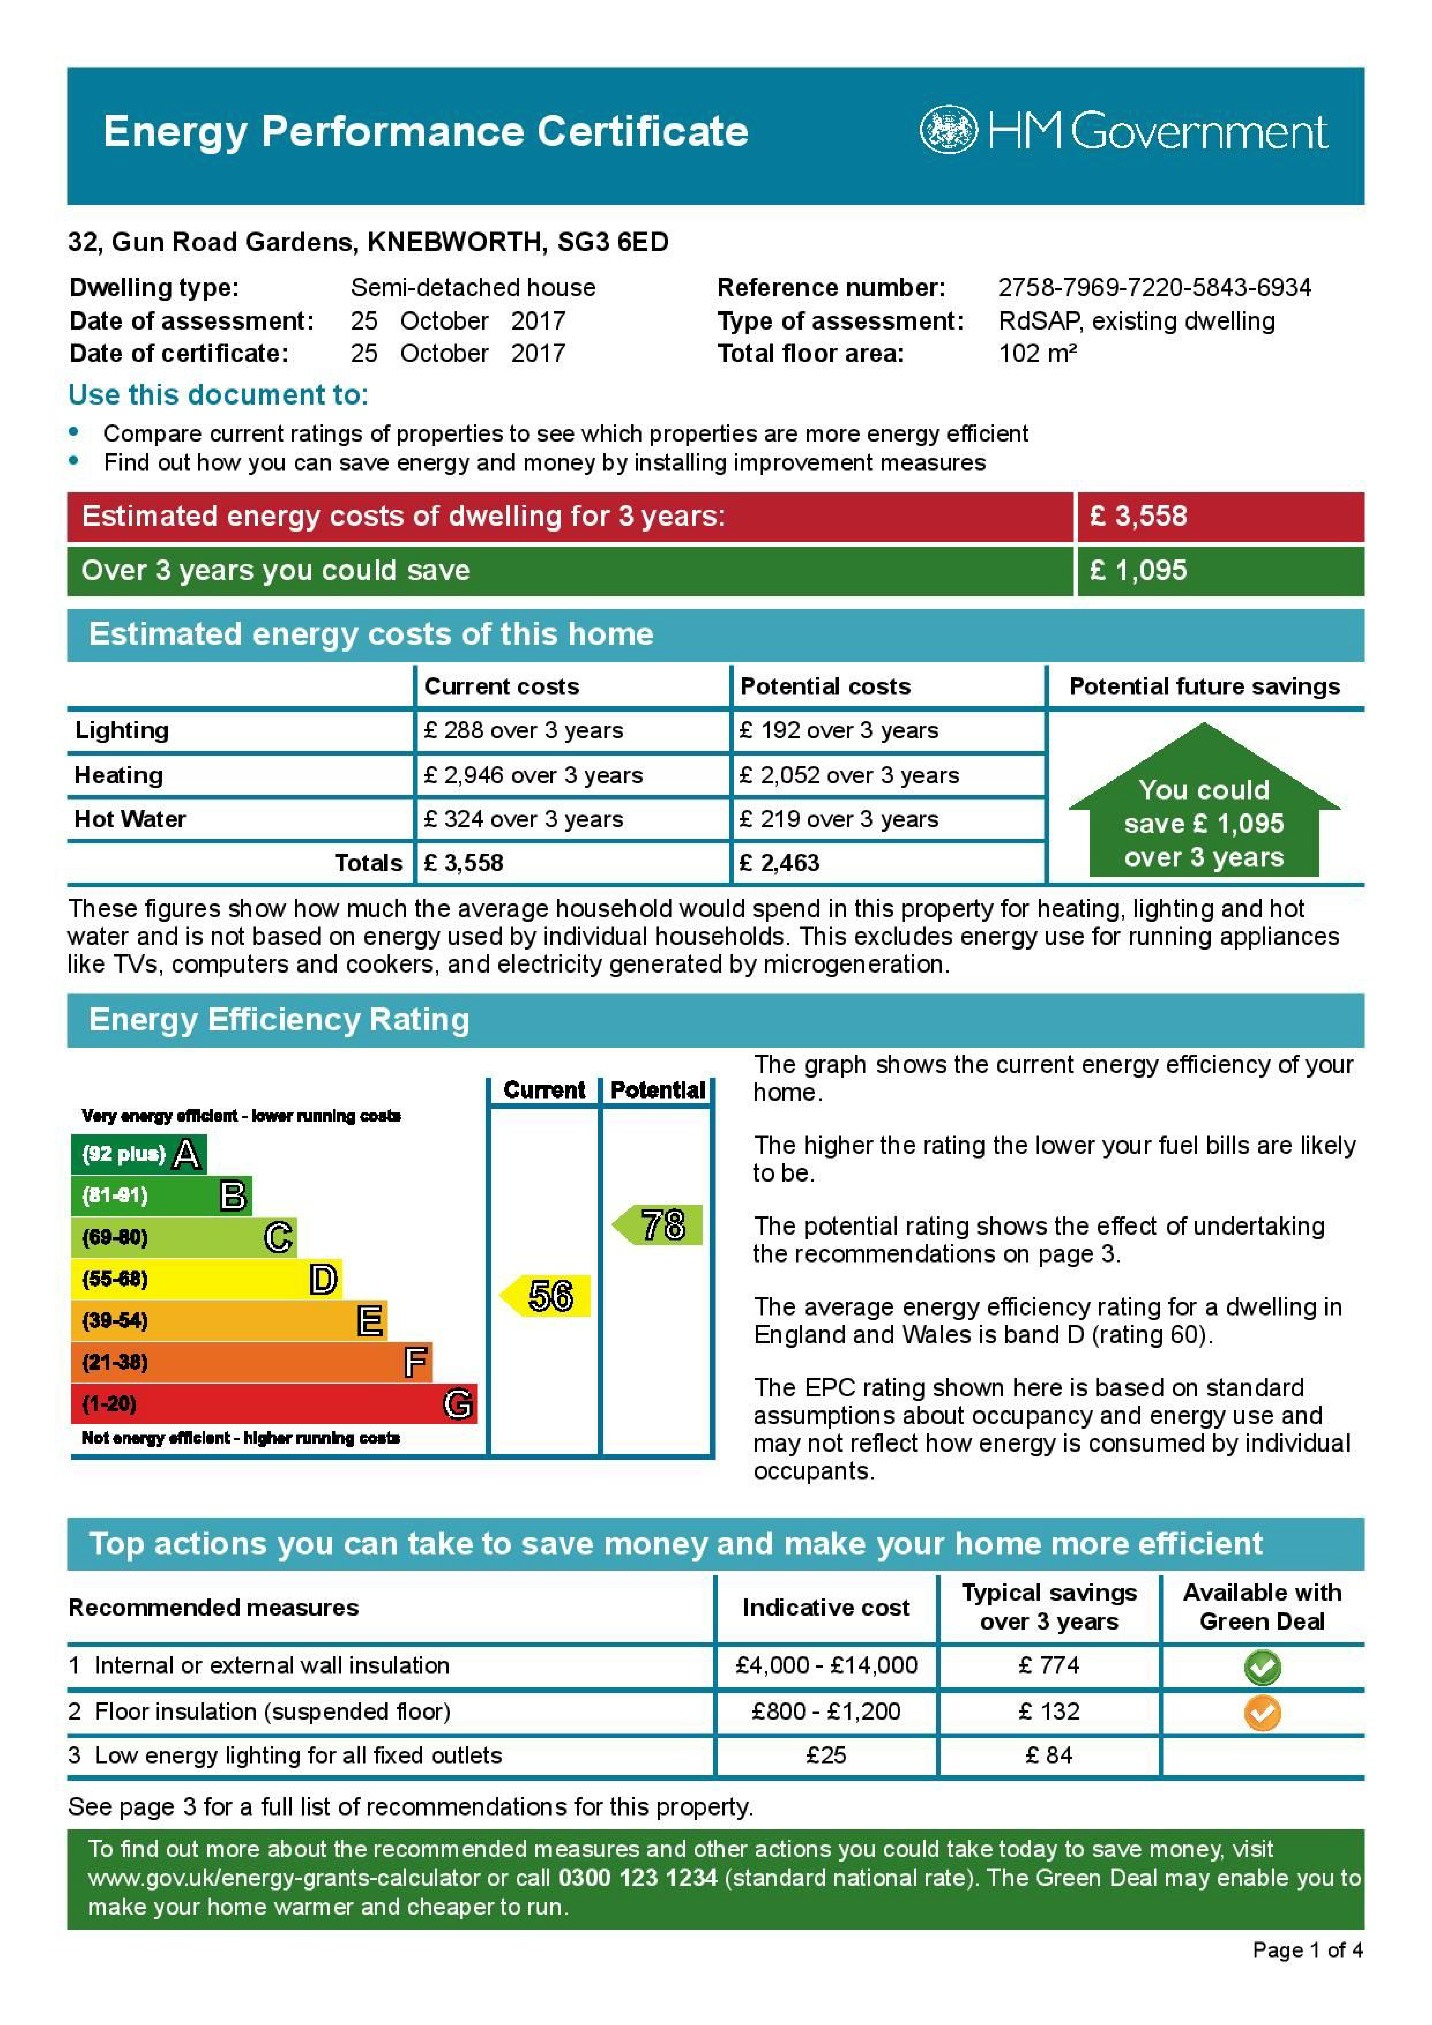 EPC Graph for Gun Road Gardens, Knebworth, SG3 6ED